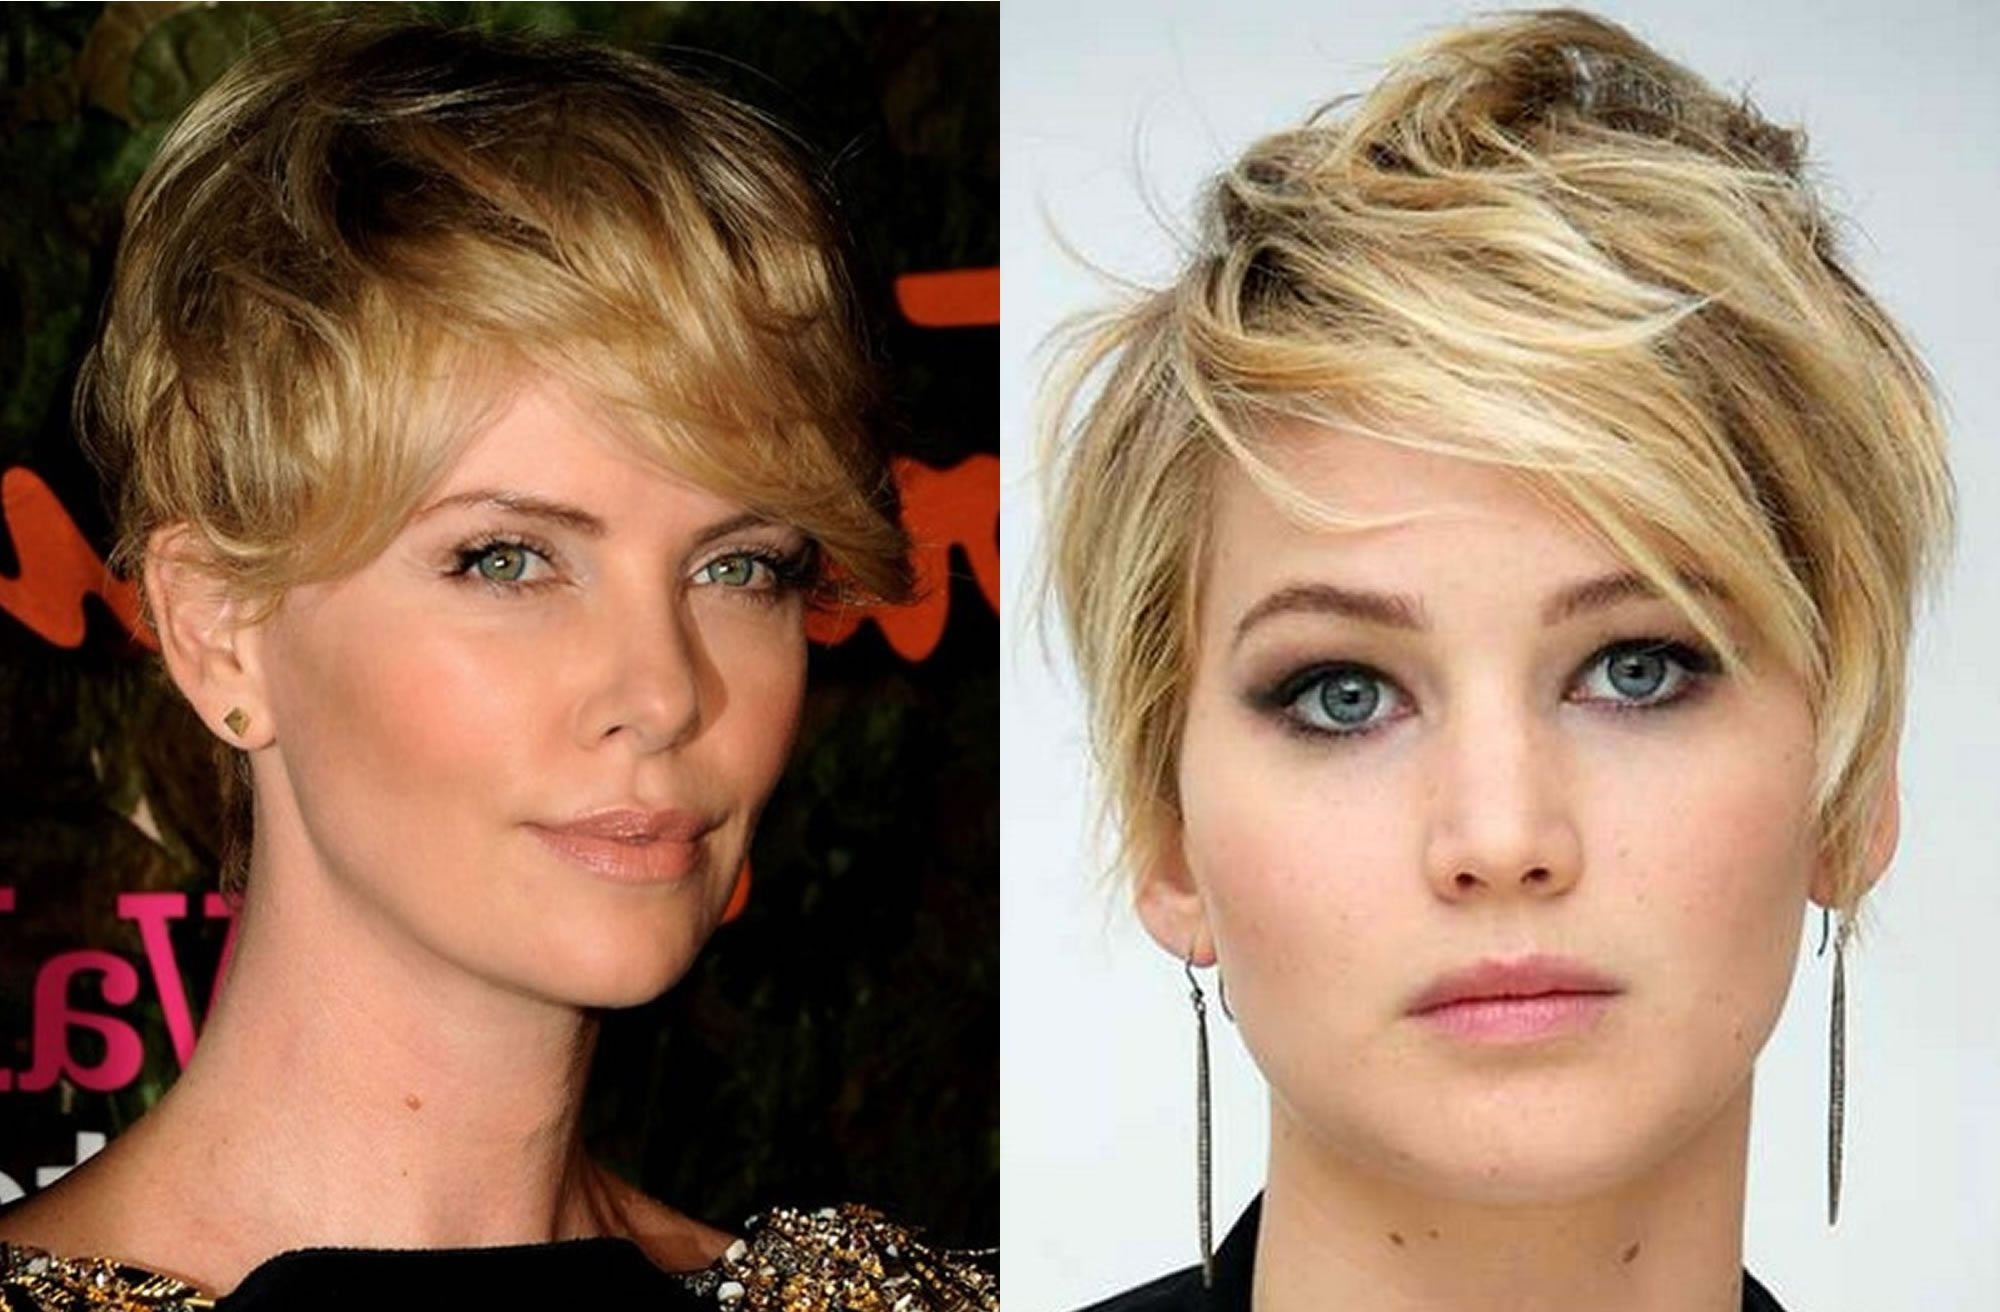 25 Unique Pixie Haircuts For Girls 2018 2019 – Latest Pixie Cut Ideas Inside Best And Newest Pixie Hairstyles For Little Girls (View 12 of 15)